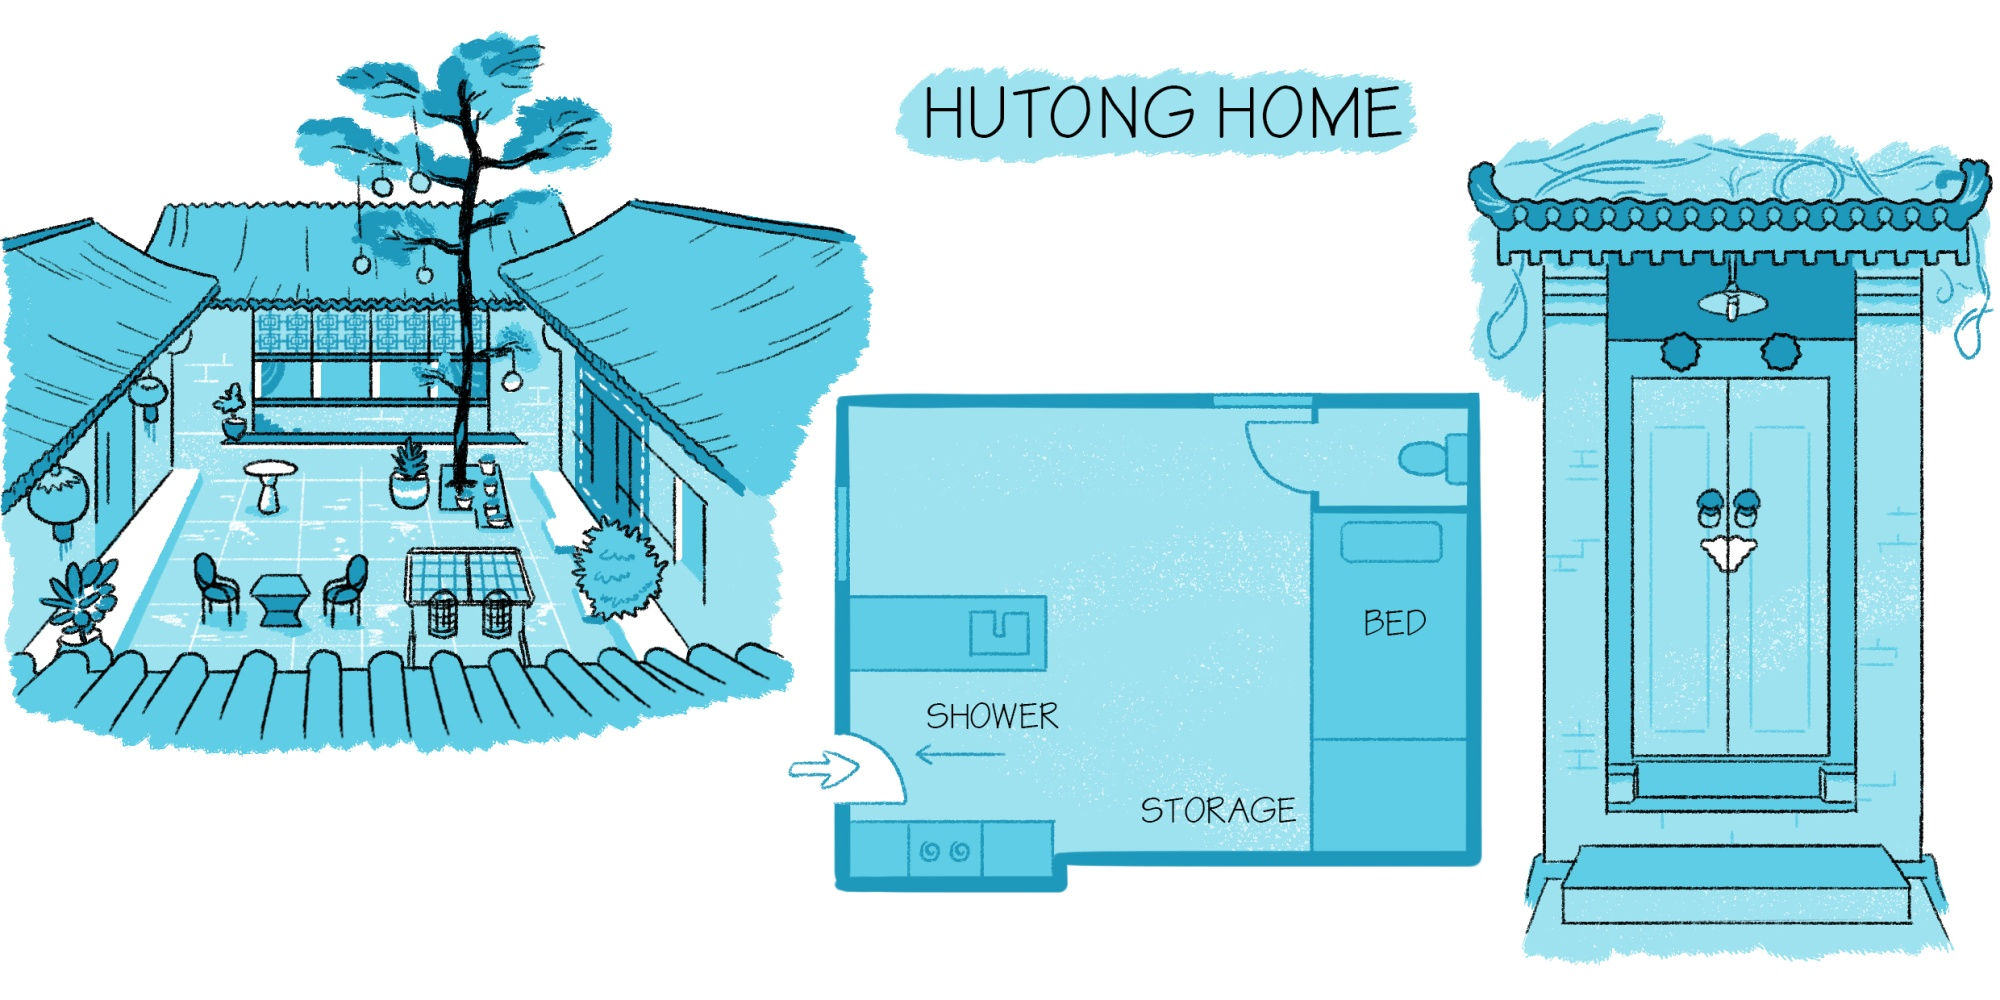 relates to Beijing's Hutong Homes Offer Respite From Bustling City Streets